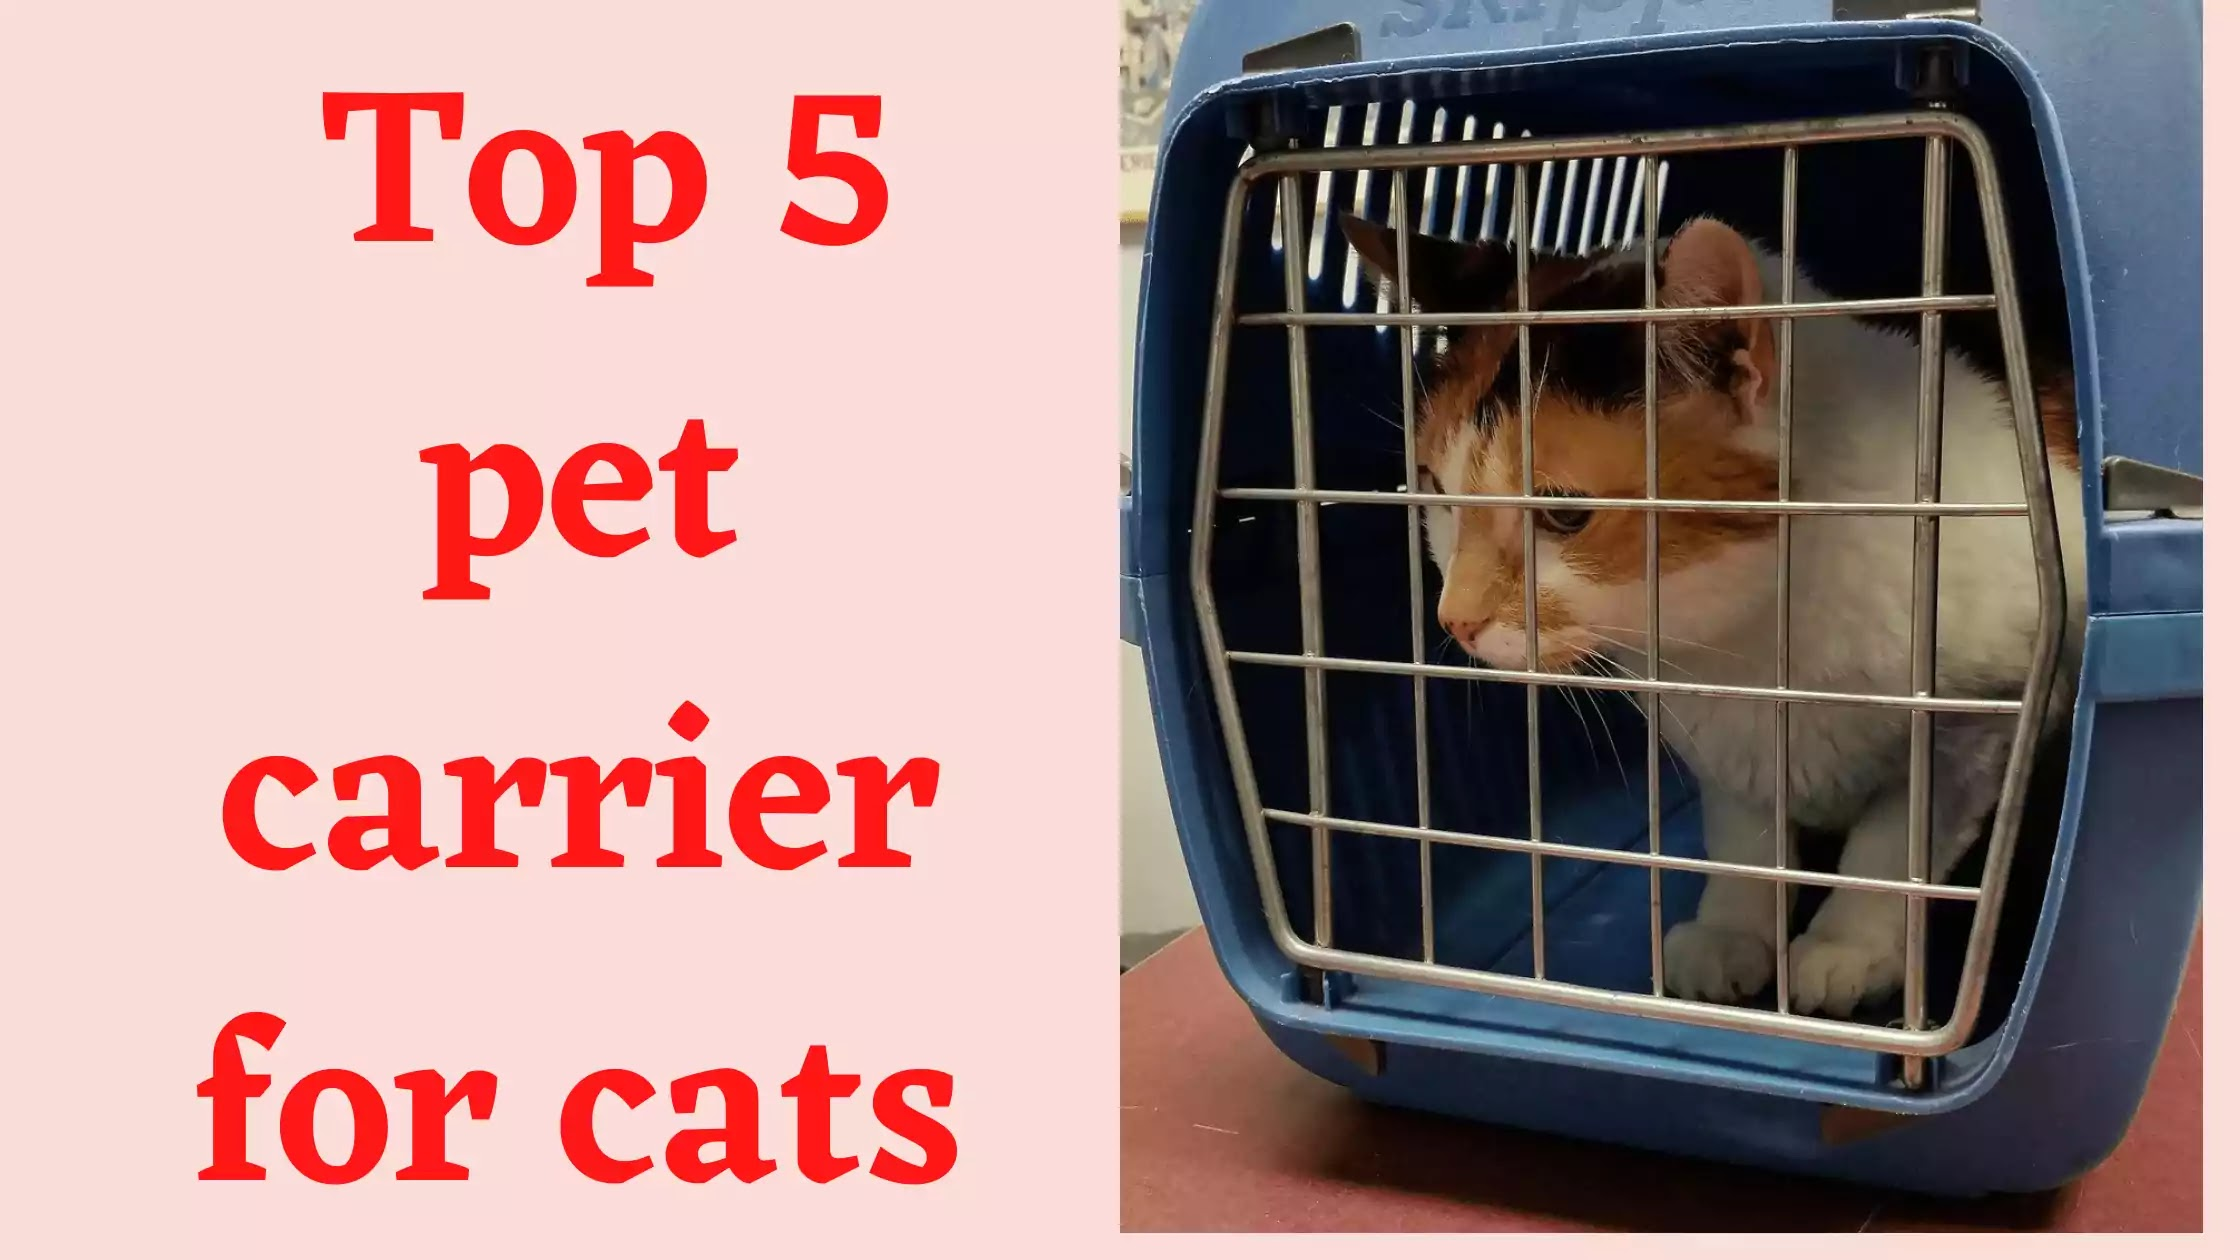 Pet carrier for cats